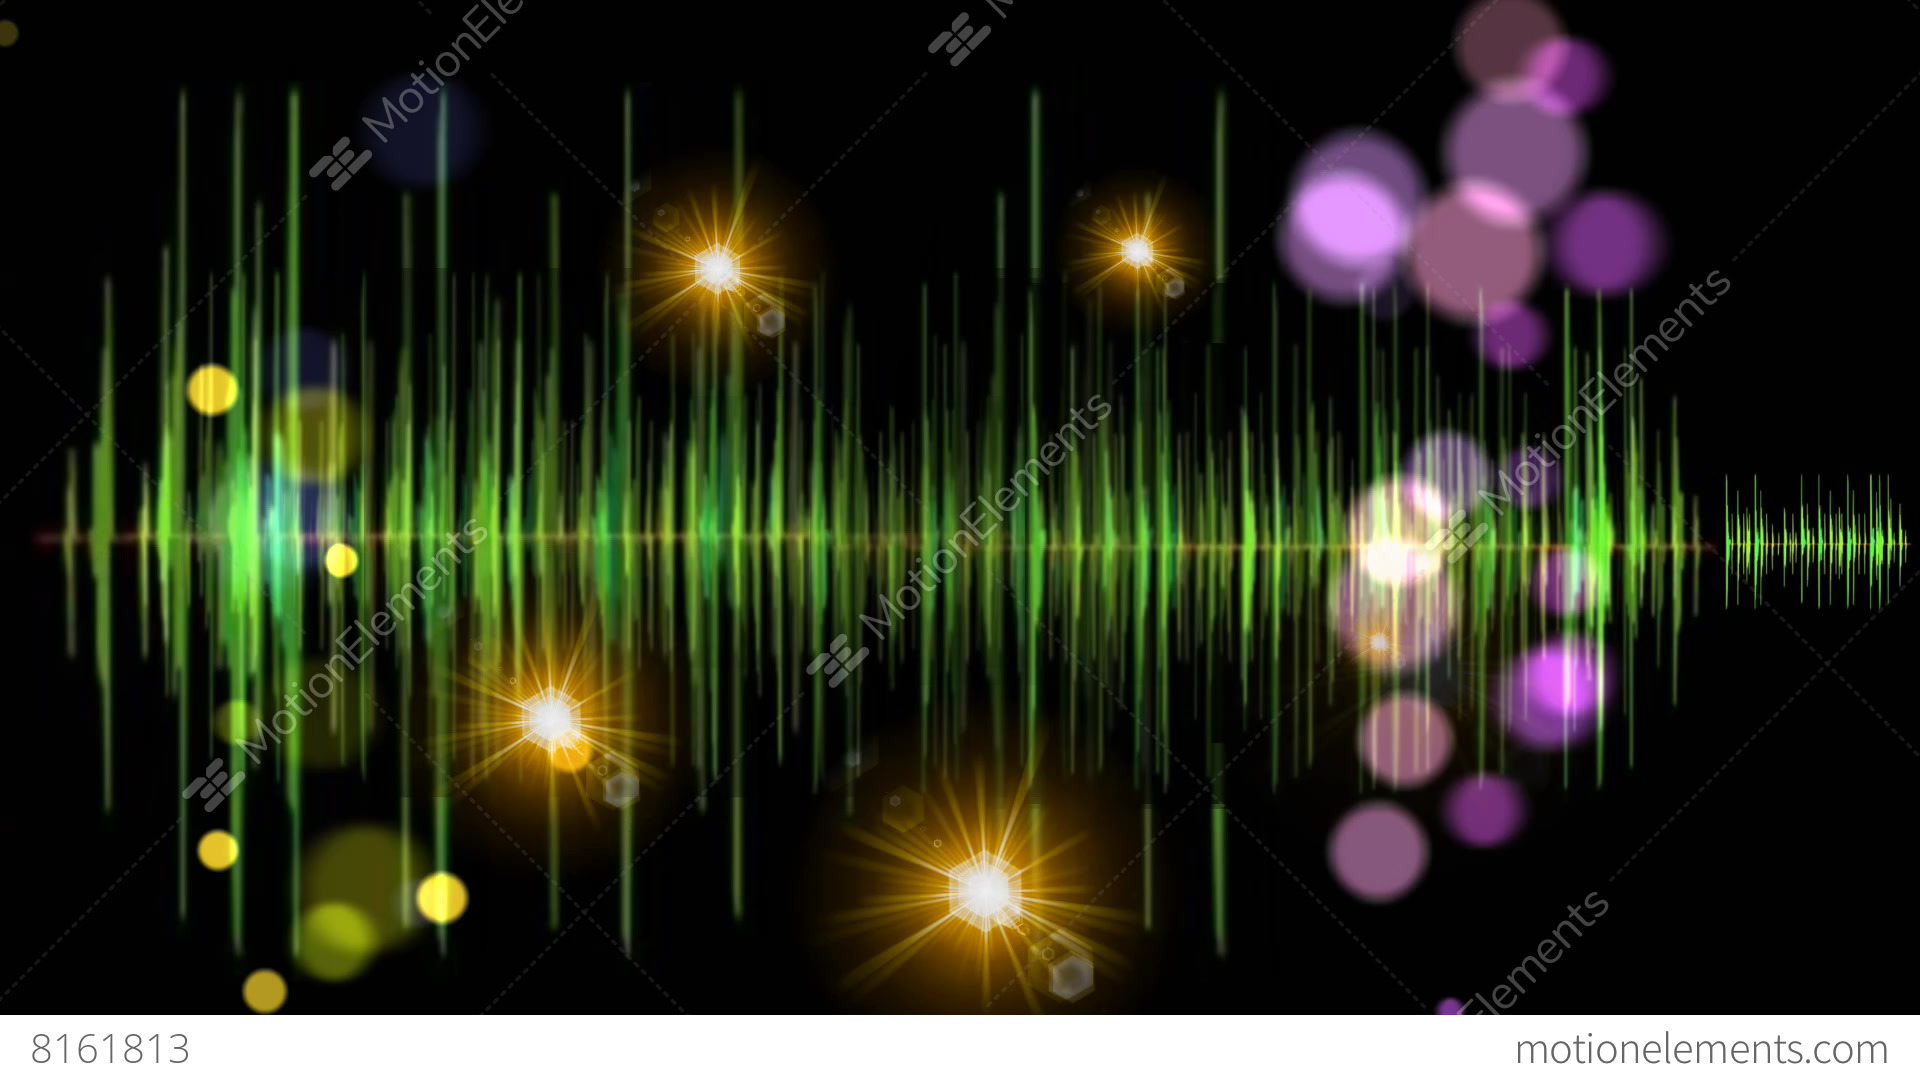 Green Light Effects Stock Footage Video: Music Background Light Graphic Motion Visual Effect Stock